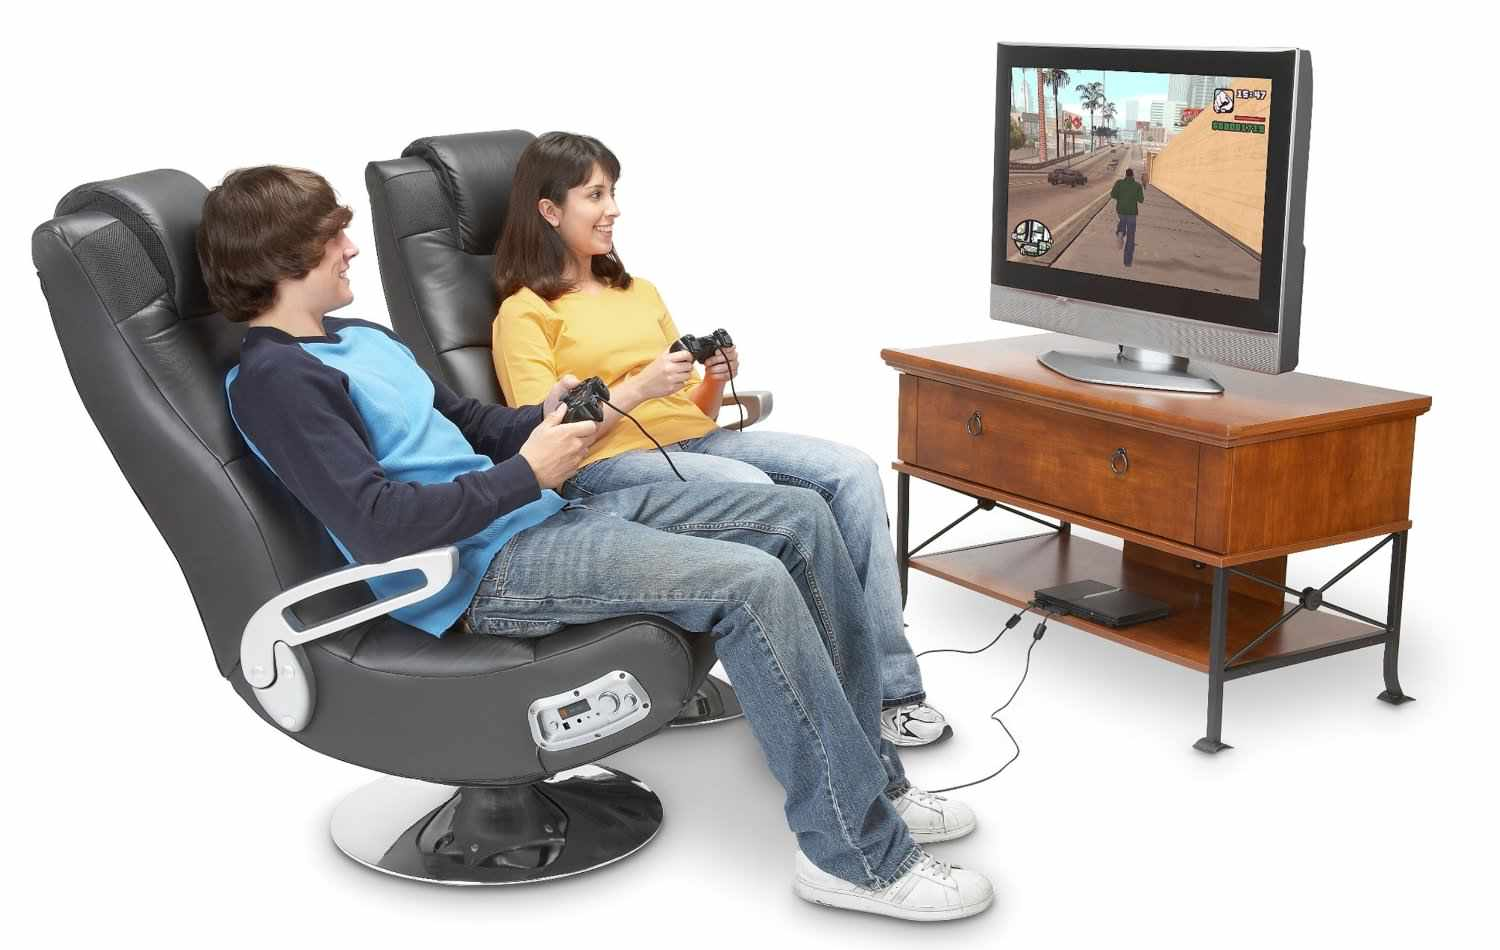 Video Game Chairs Best Gaming Chairs Of 2019 Reviews Top Picks